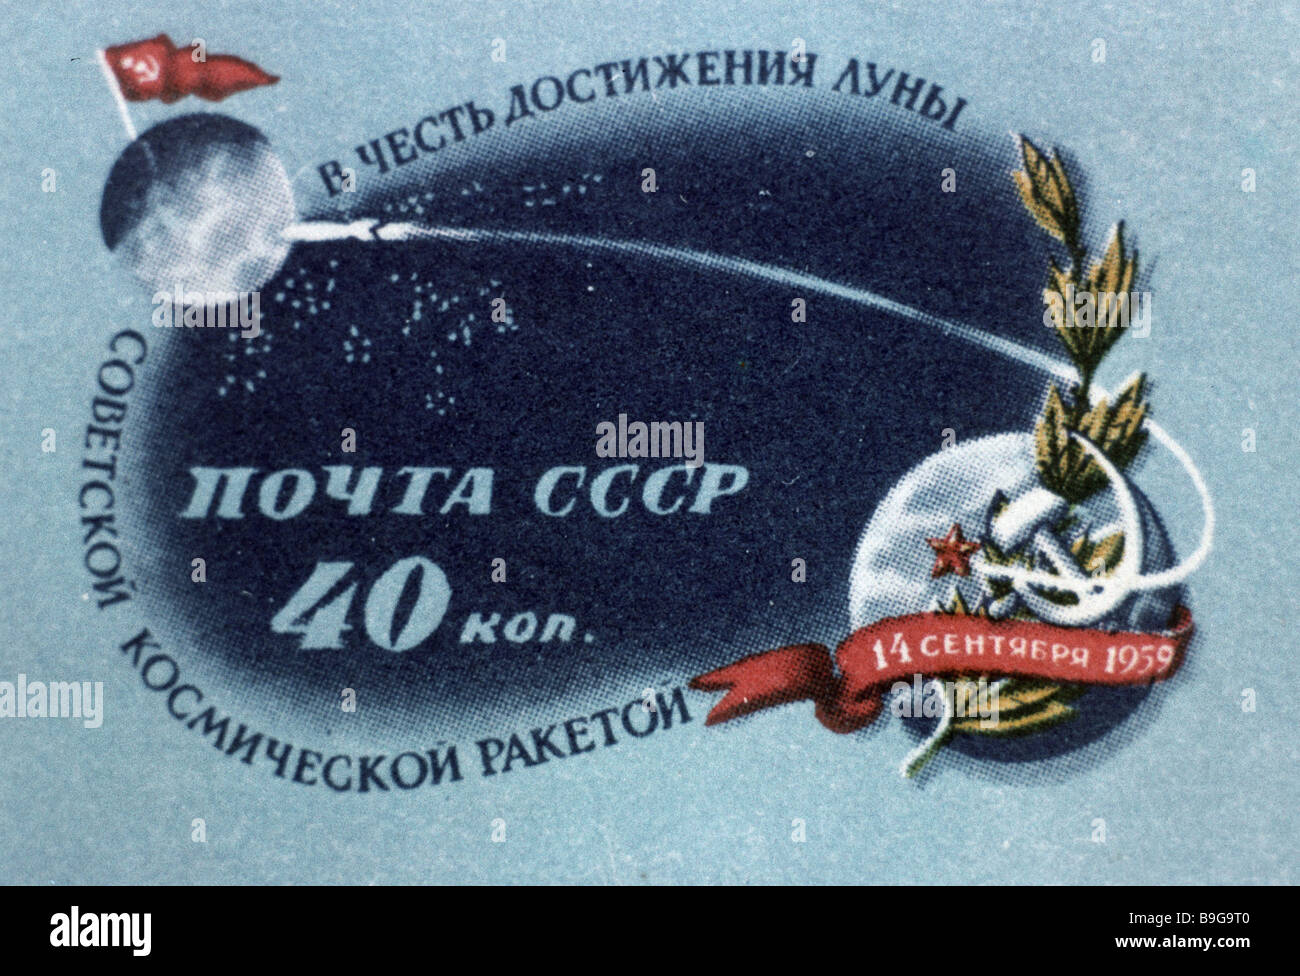 A postal stamp dedicated to the Luna 2 automated interplanetary station launch September 14 1959 - Stock Image